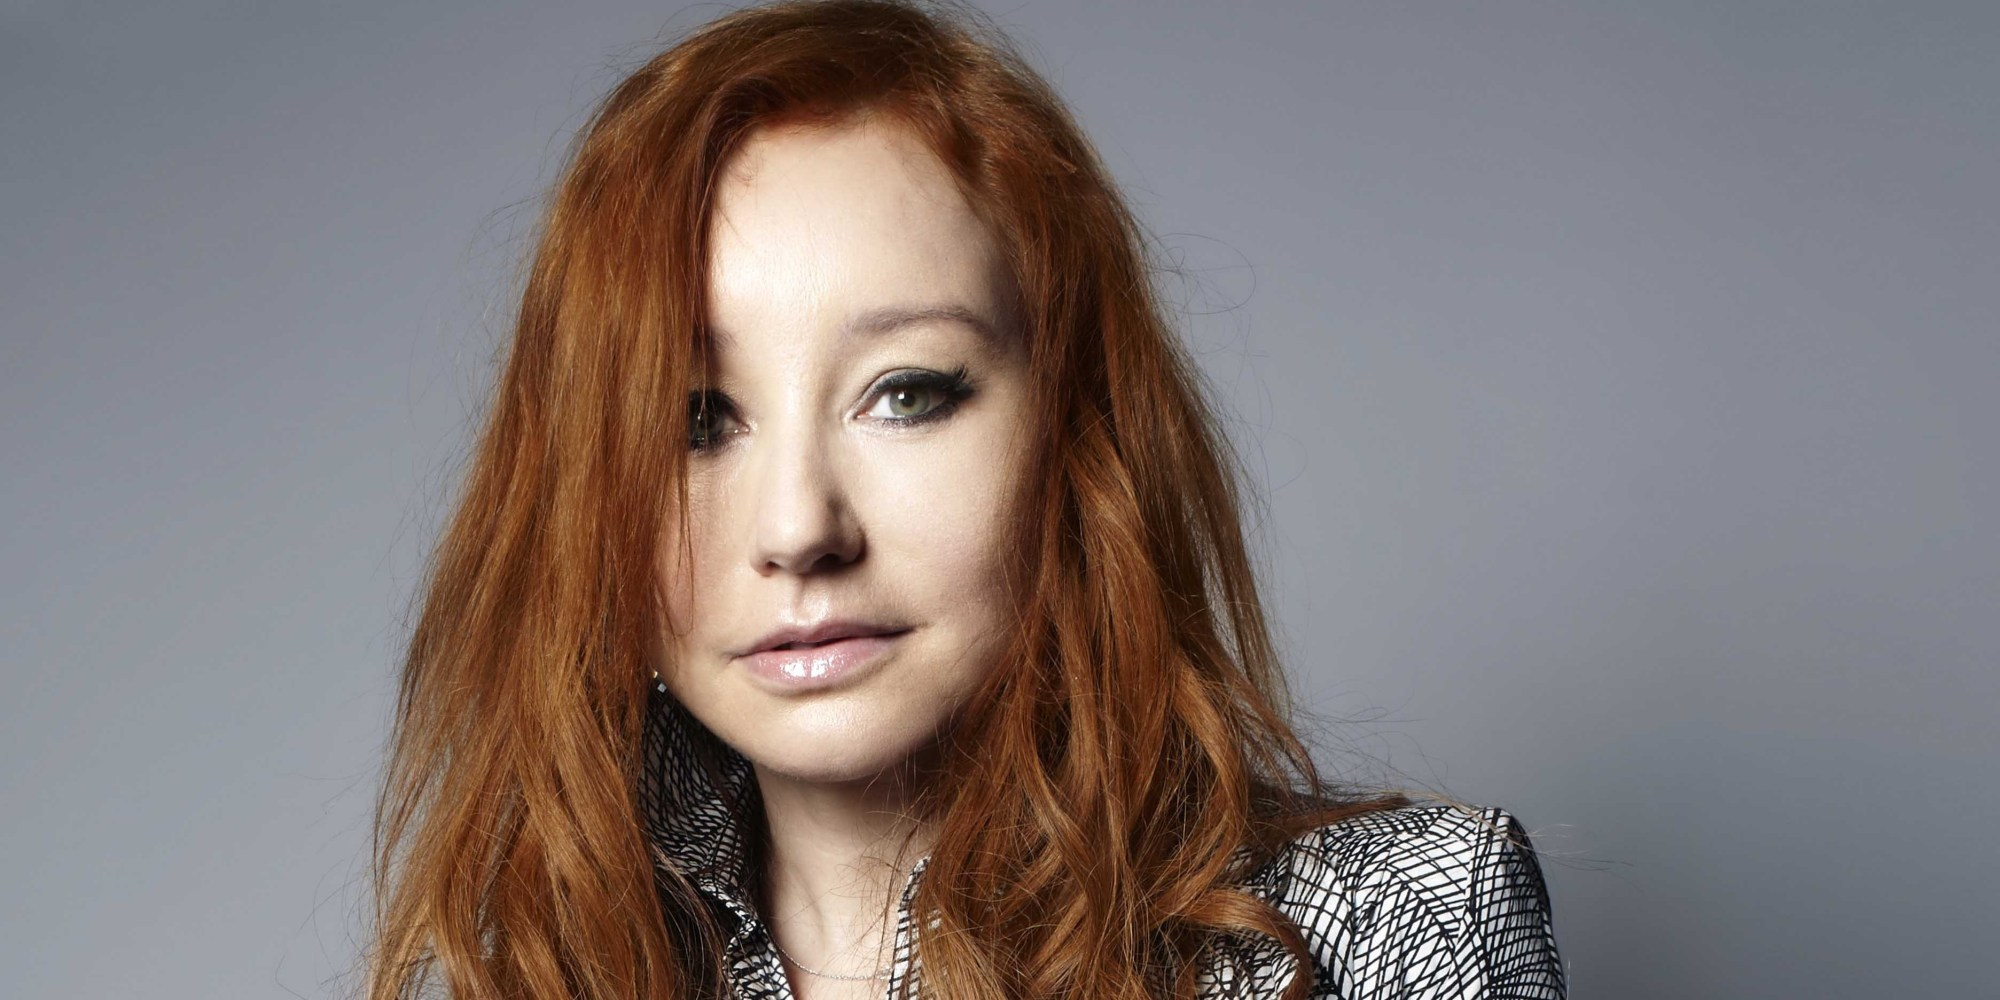 Tori Amos Goes Under The Covers With Miley Cyrus, Madonna ...